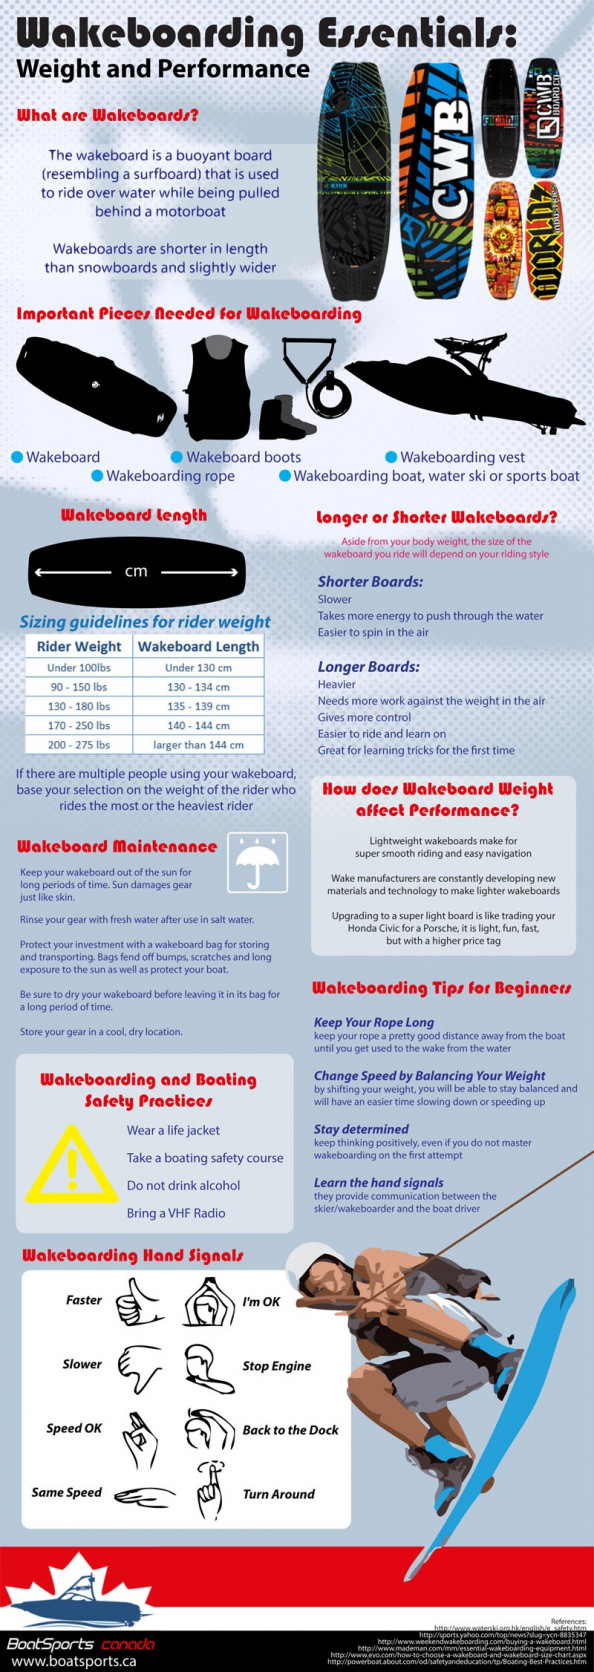 Wakeboarding Essentials: Weight and Performance Infographic